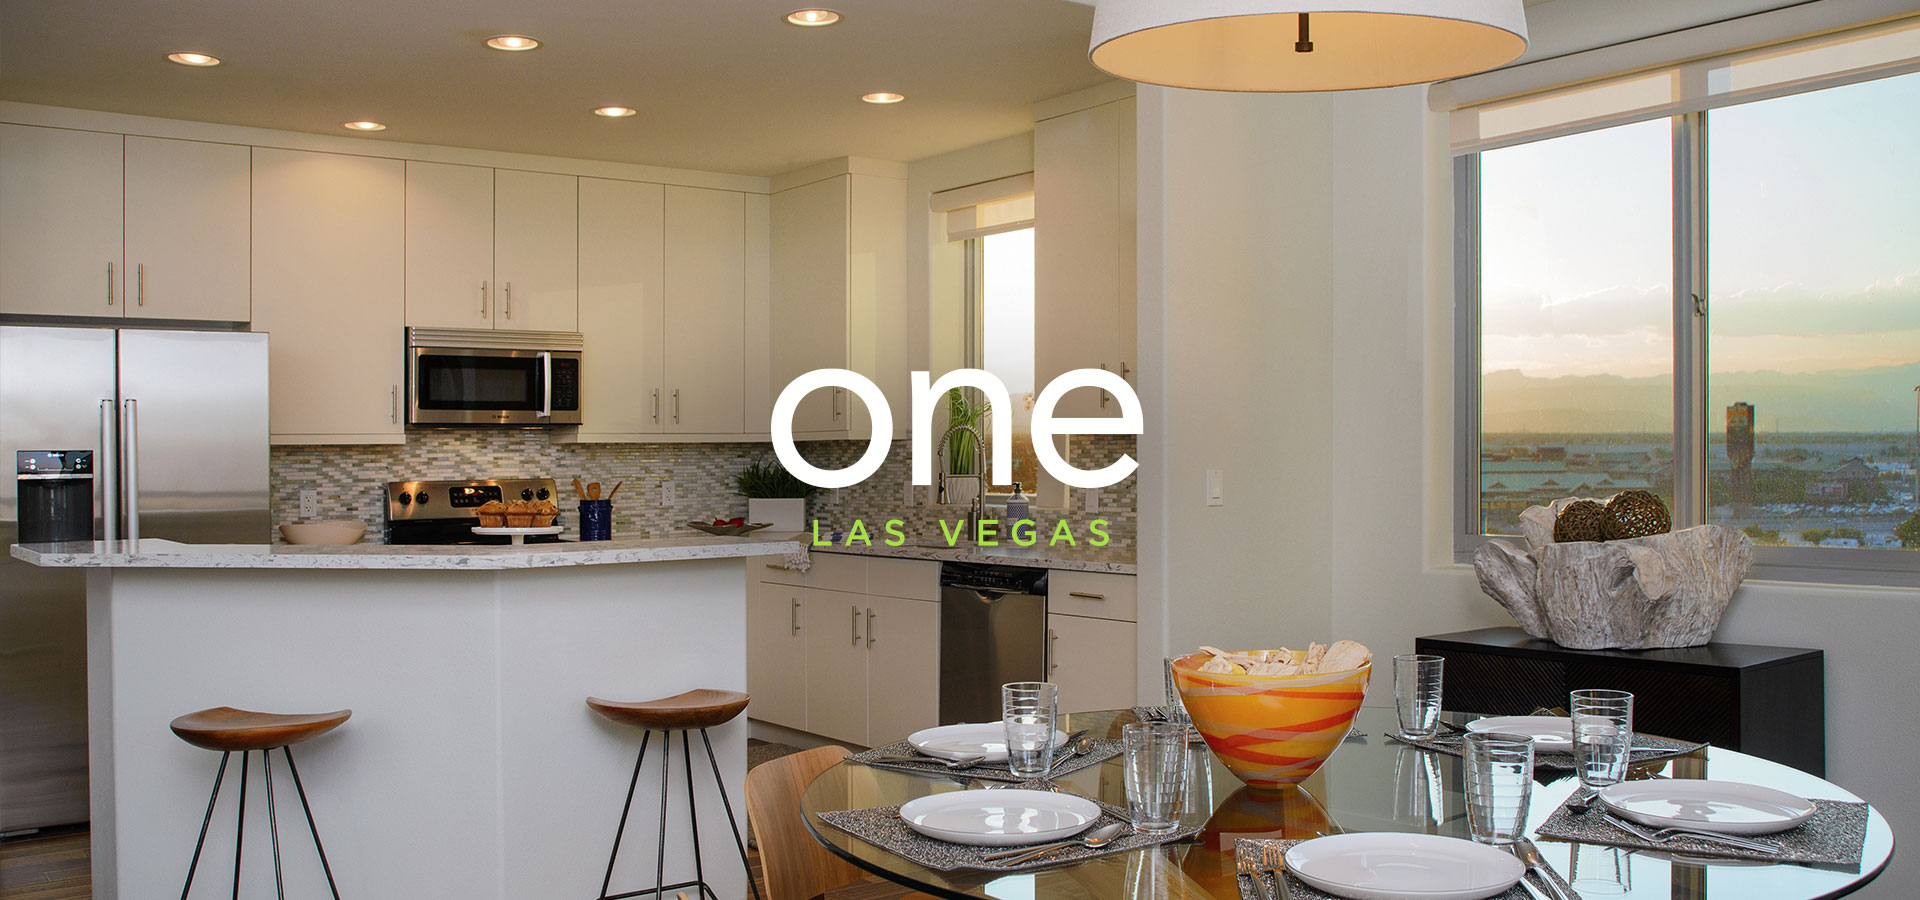 Kitchen and dining room table in one of the model homes at One Las Vegas with text that reads 'One Las Vegas'